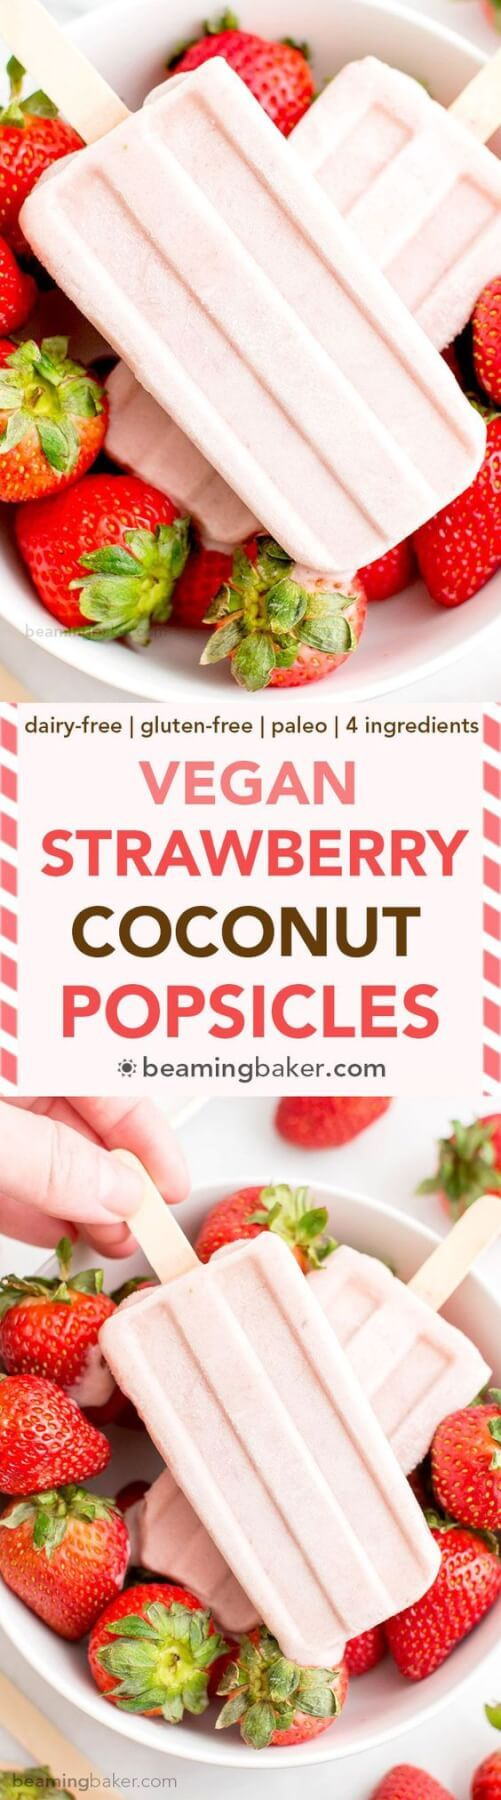 Paleo Strawberry Coconut Popsicles Recipe